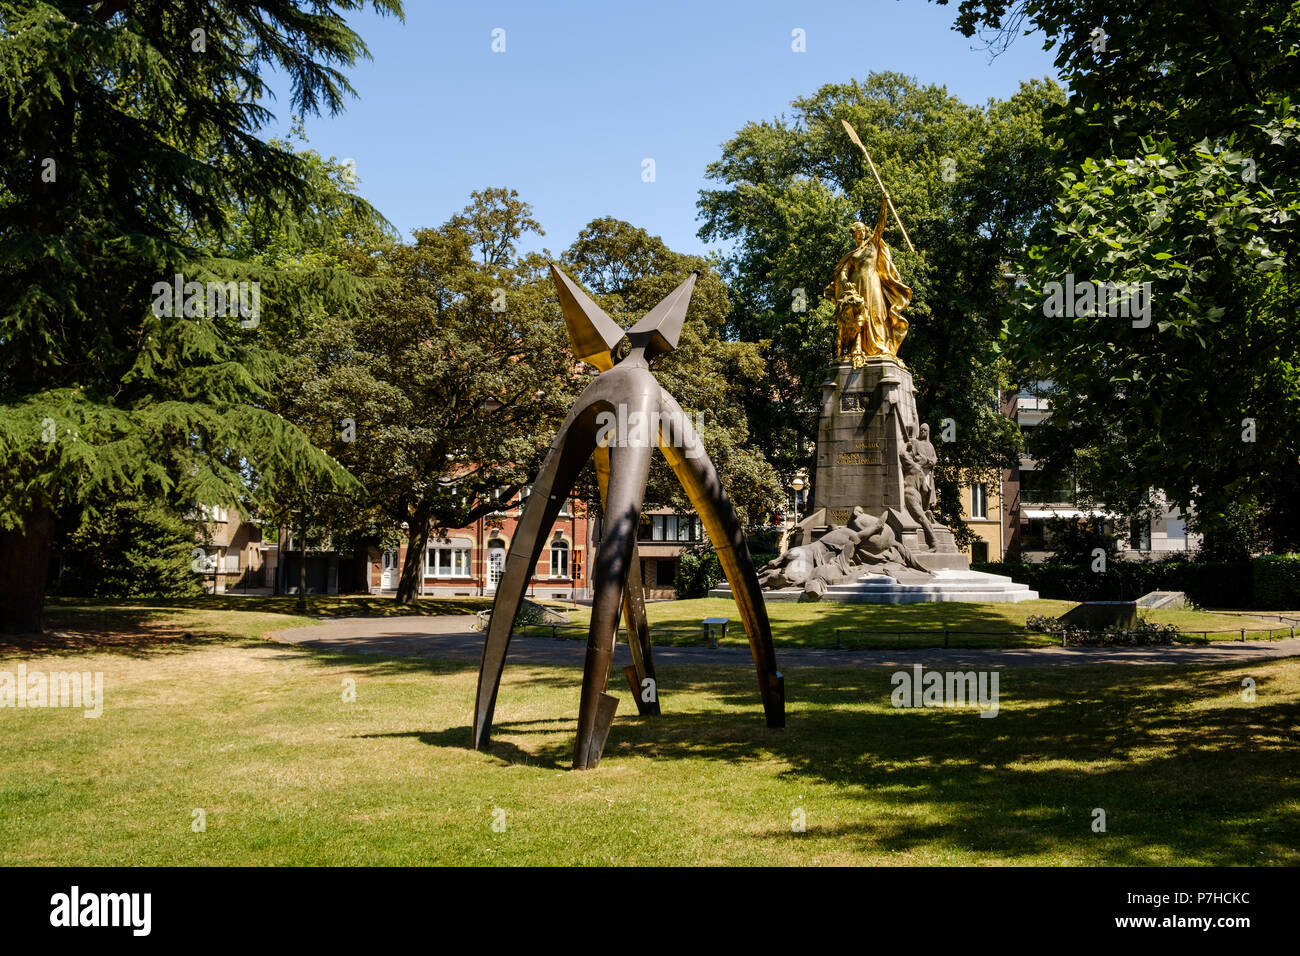 Monument of 2 spurs in the Groeningepark remembering the Battle of the Golden Spurs (Guldensporenslag) fought July 11 1302 in the background the Groen - Stock Image